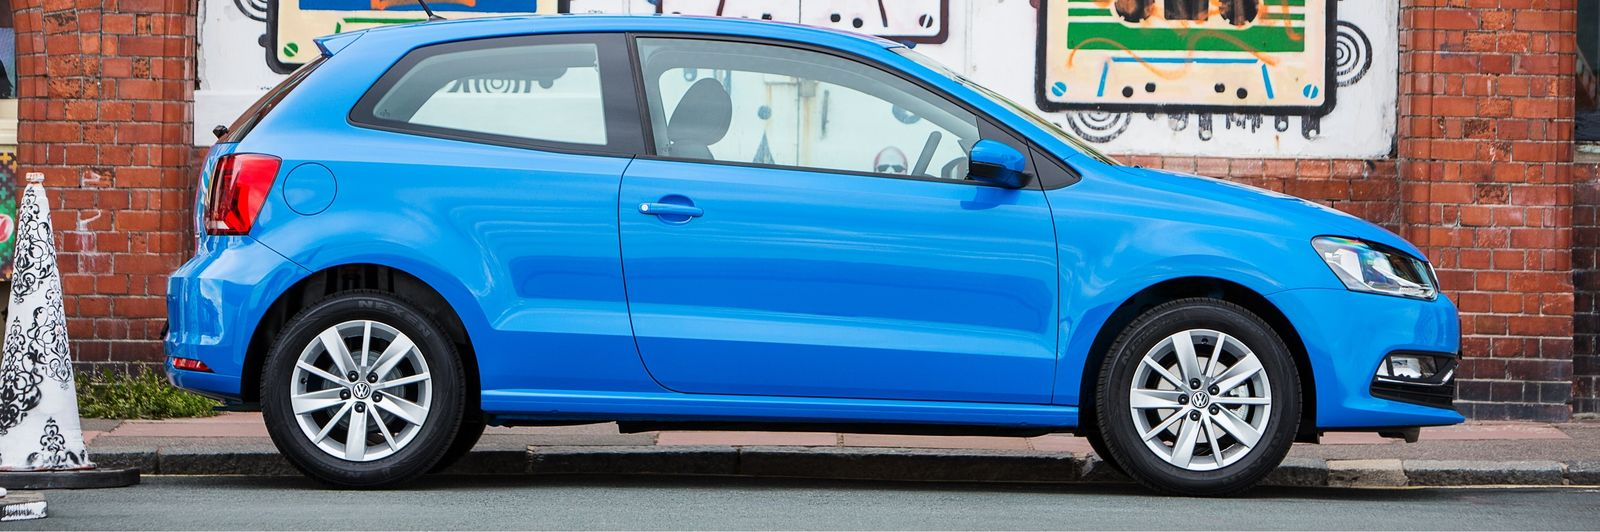 colour car metallic : Car Paint Types Explained